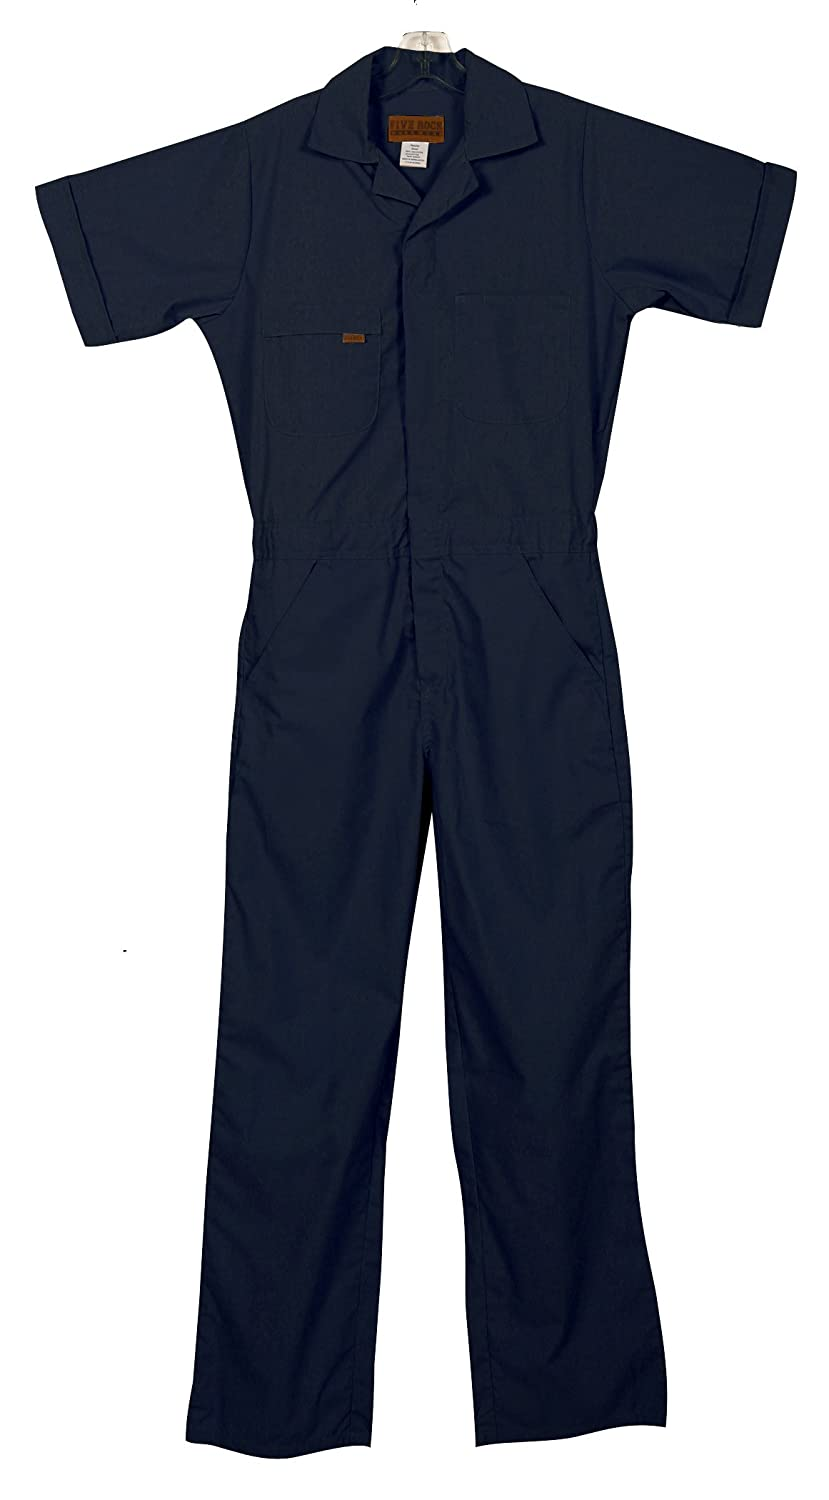 1940s Costumes- WW2, Nurse, Pinup, Rosie the Riveter Five Rock Poplin Short Sleeve Unlined Coveralls Regular Fit $42.39 AT vintagedancer.com